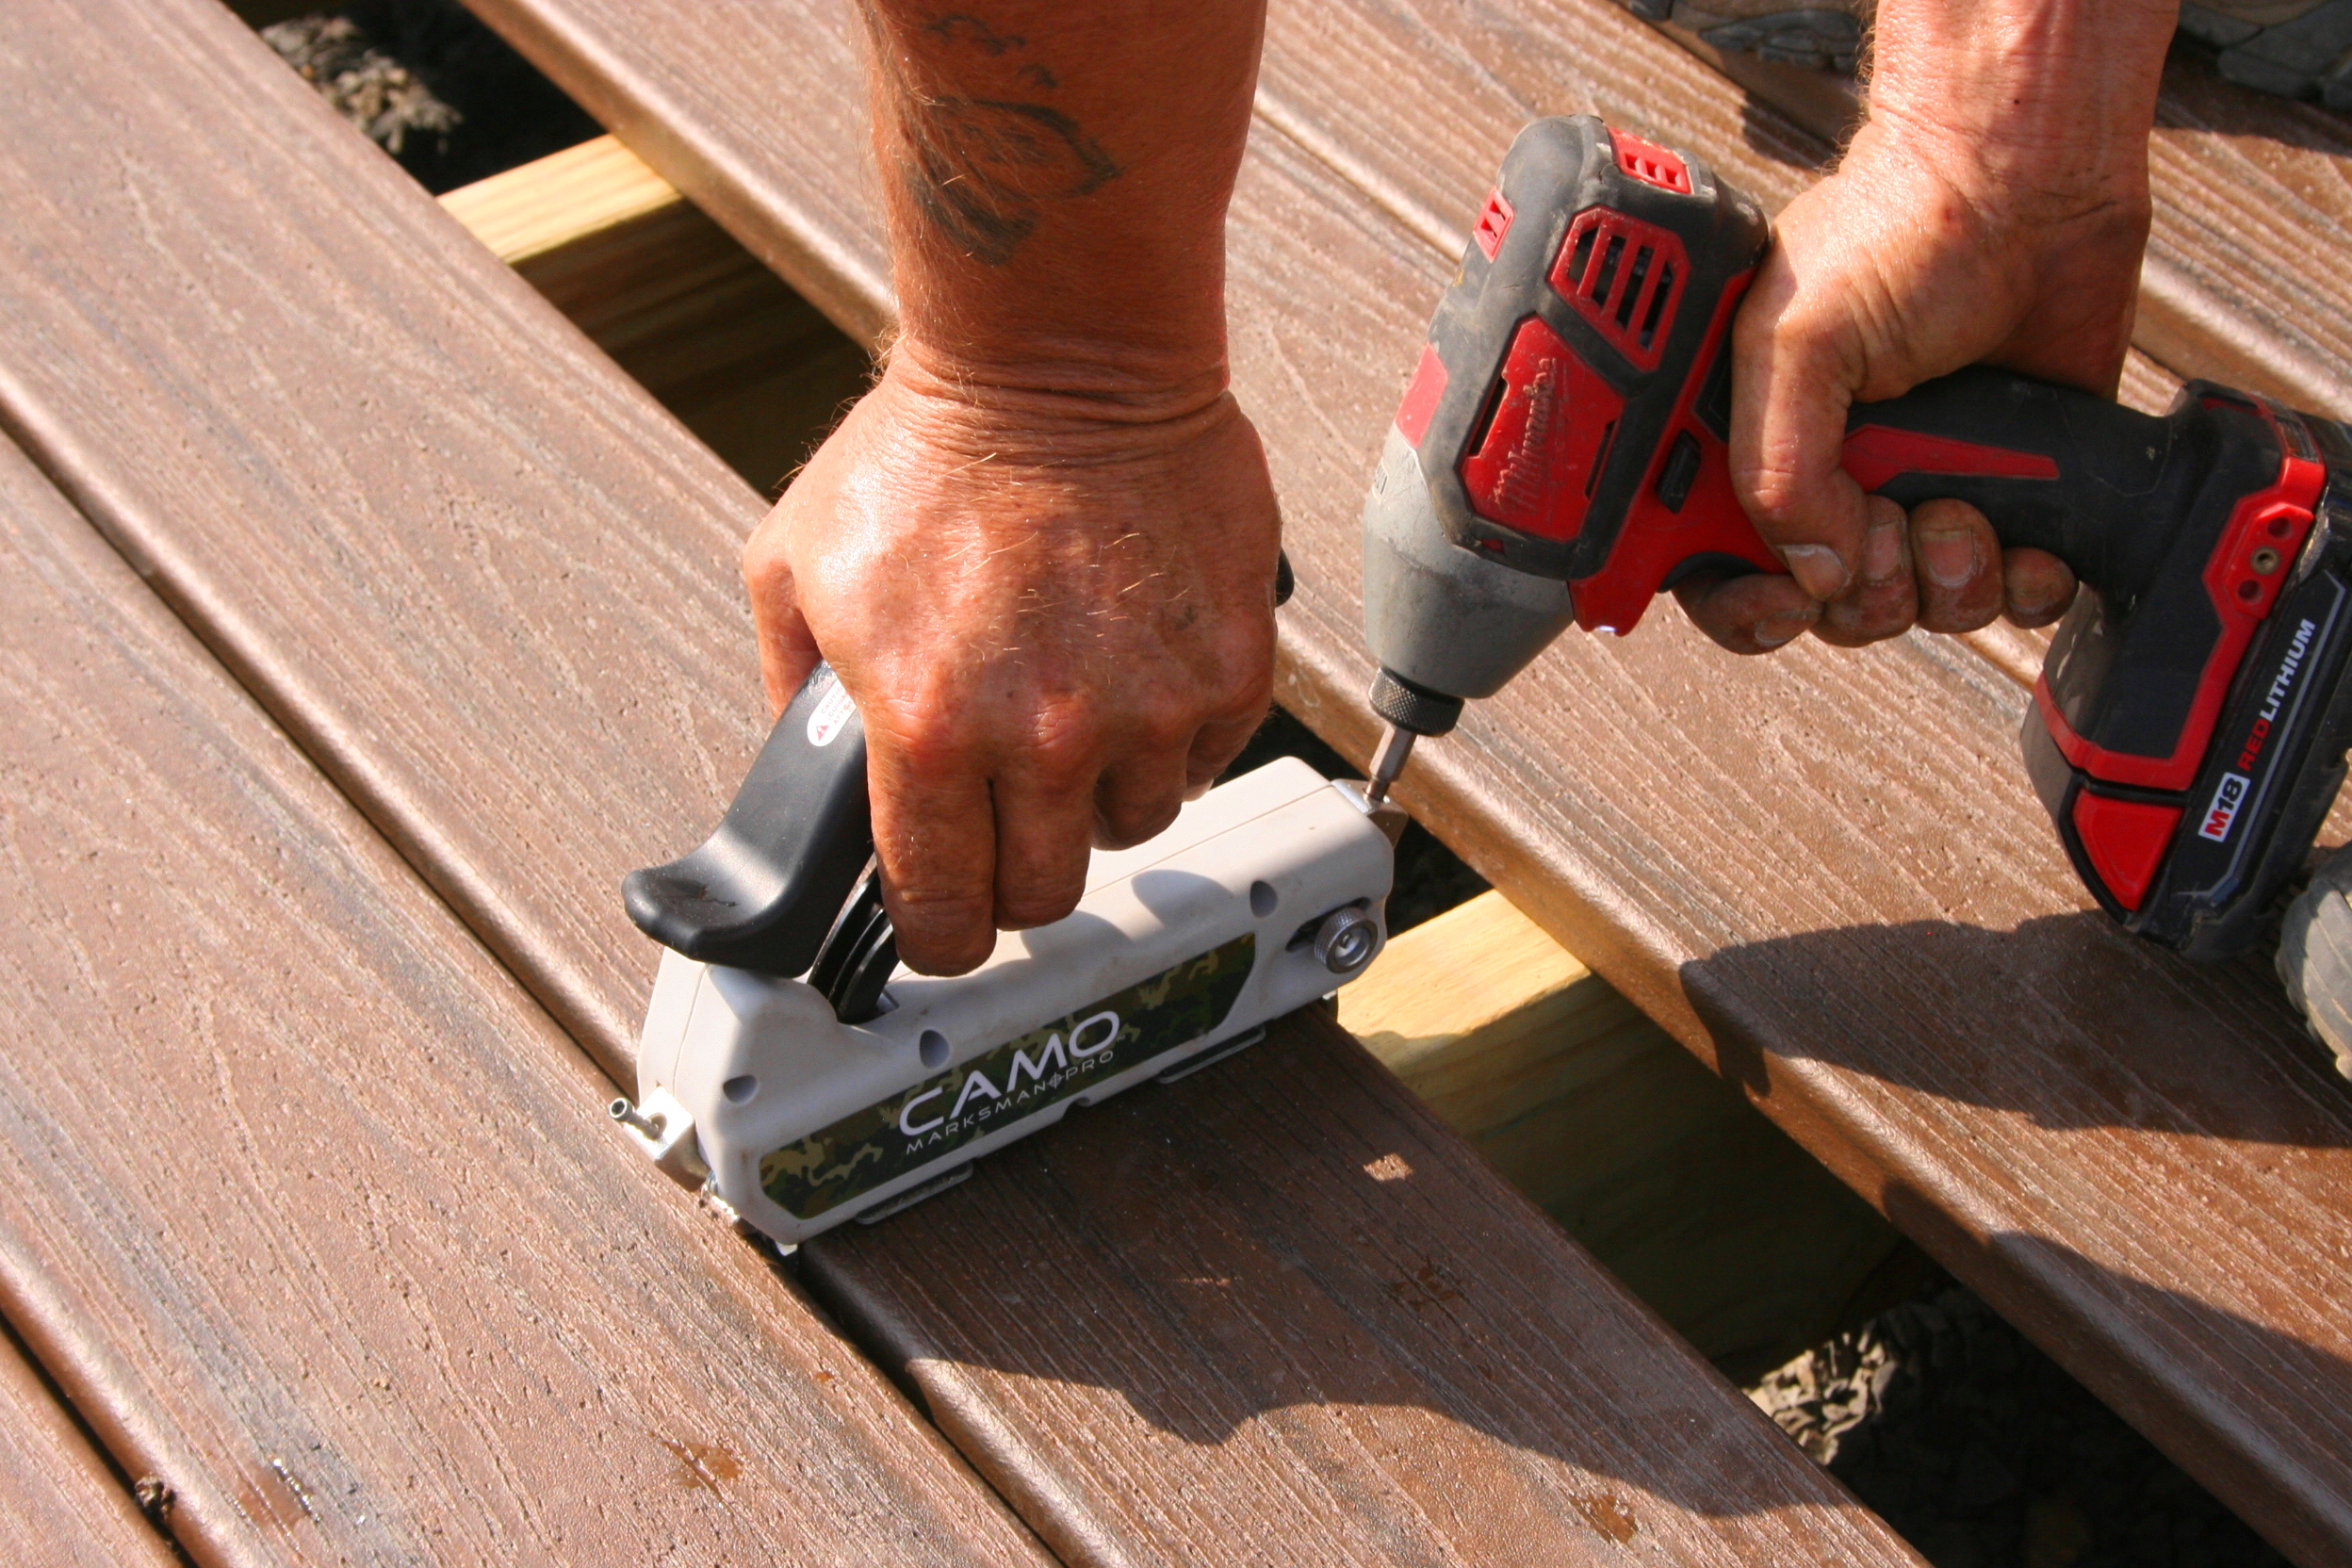 National Nail Expands Warranty For Its Camo 174 Edge Deck